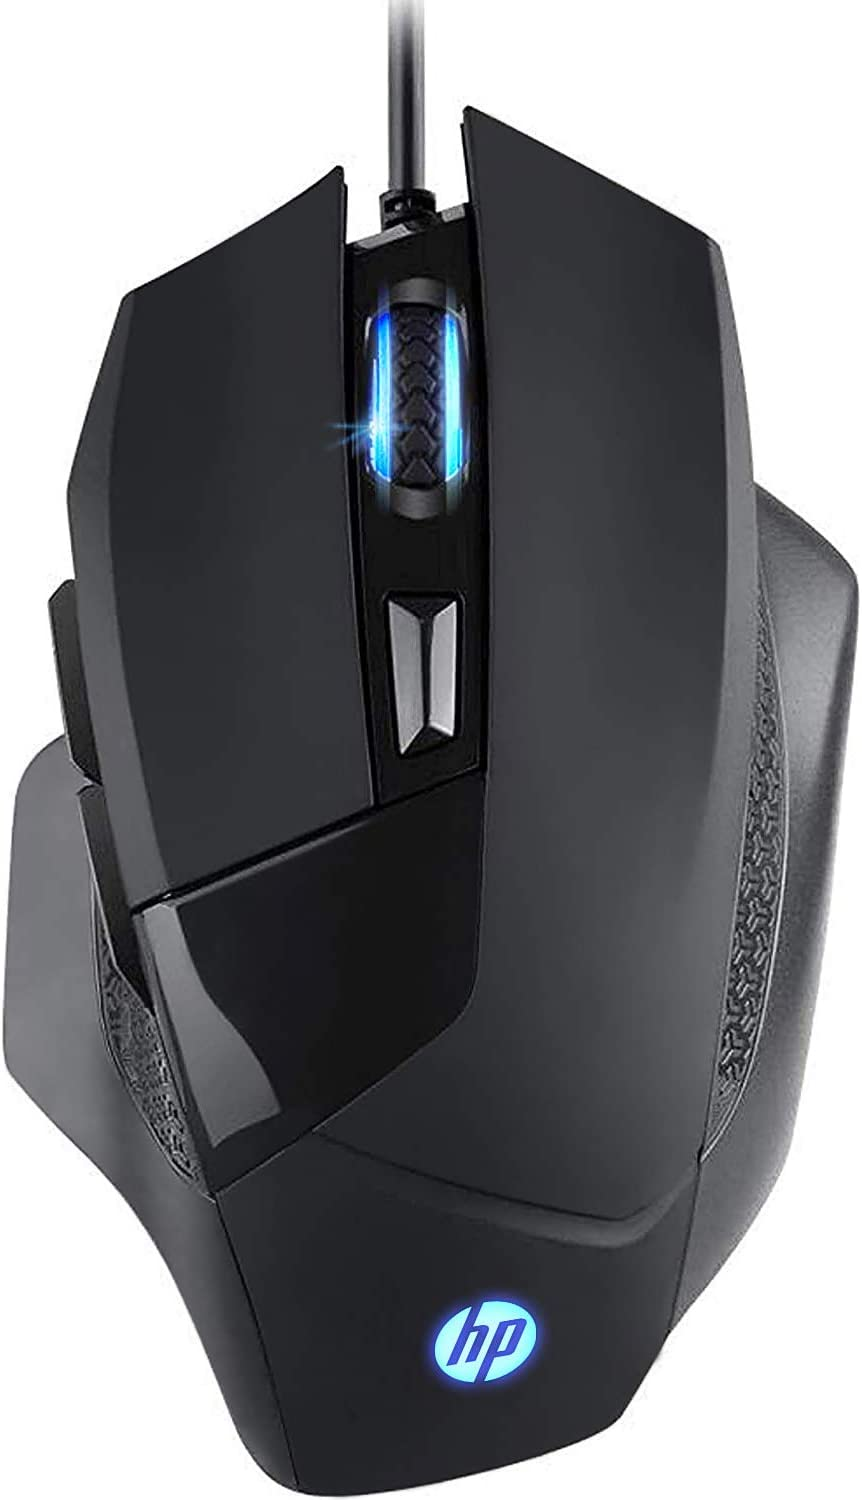 HP Gaming Mouse Wired, Ergonomic Game USB Gaming Laptop Mice RGB, [4000 DPI] Programmable Comfortable Grip 6 Buttons [G200] Black